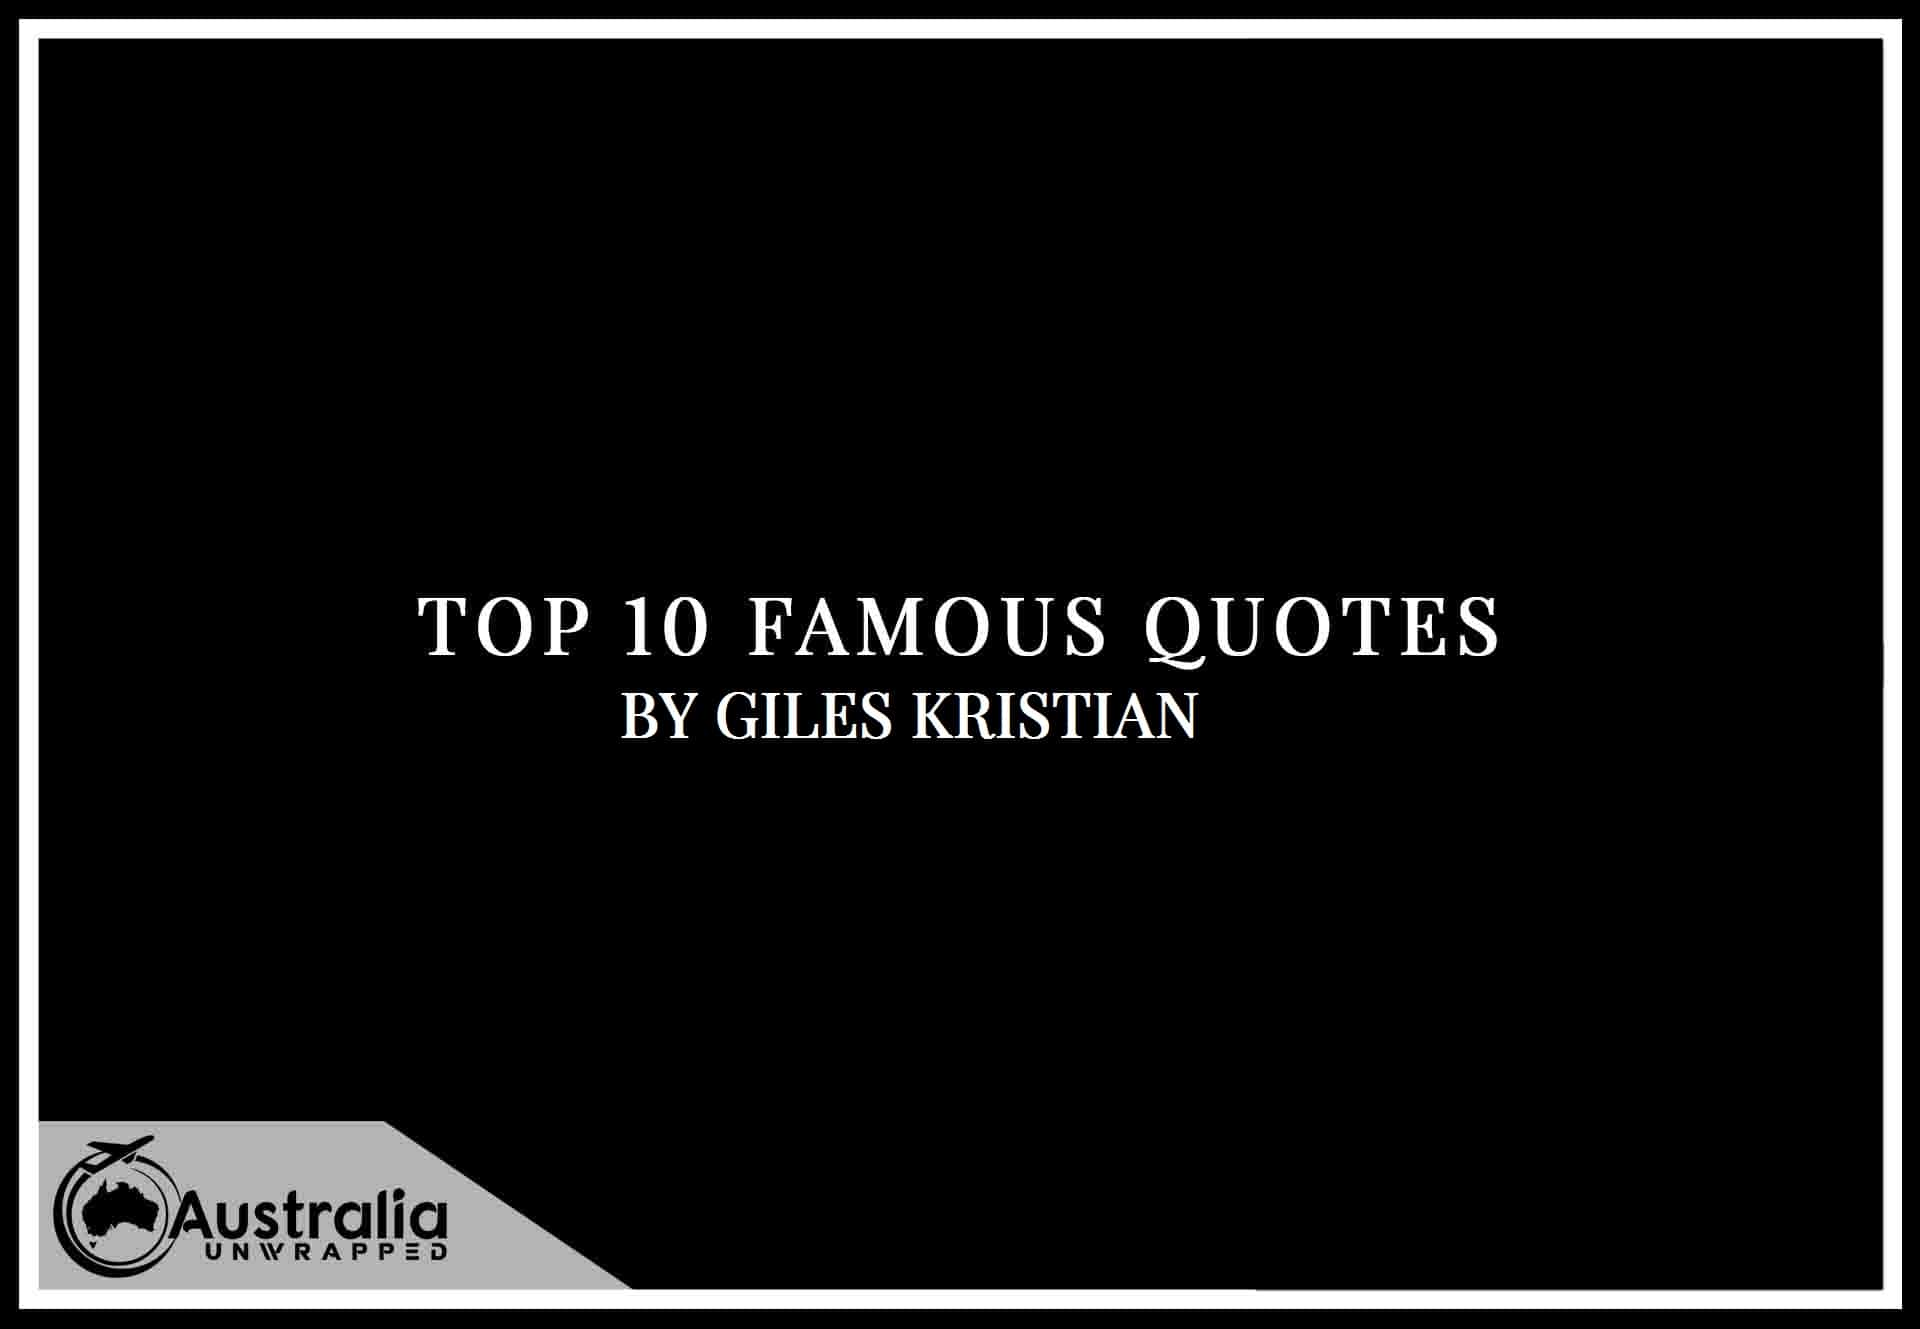 Giles Kristian's Top 10 Popular and Famous Quotes